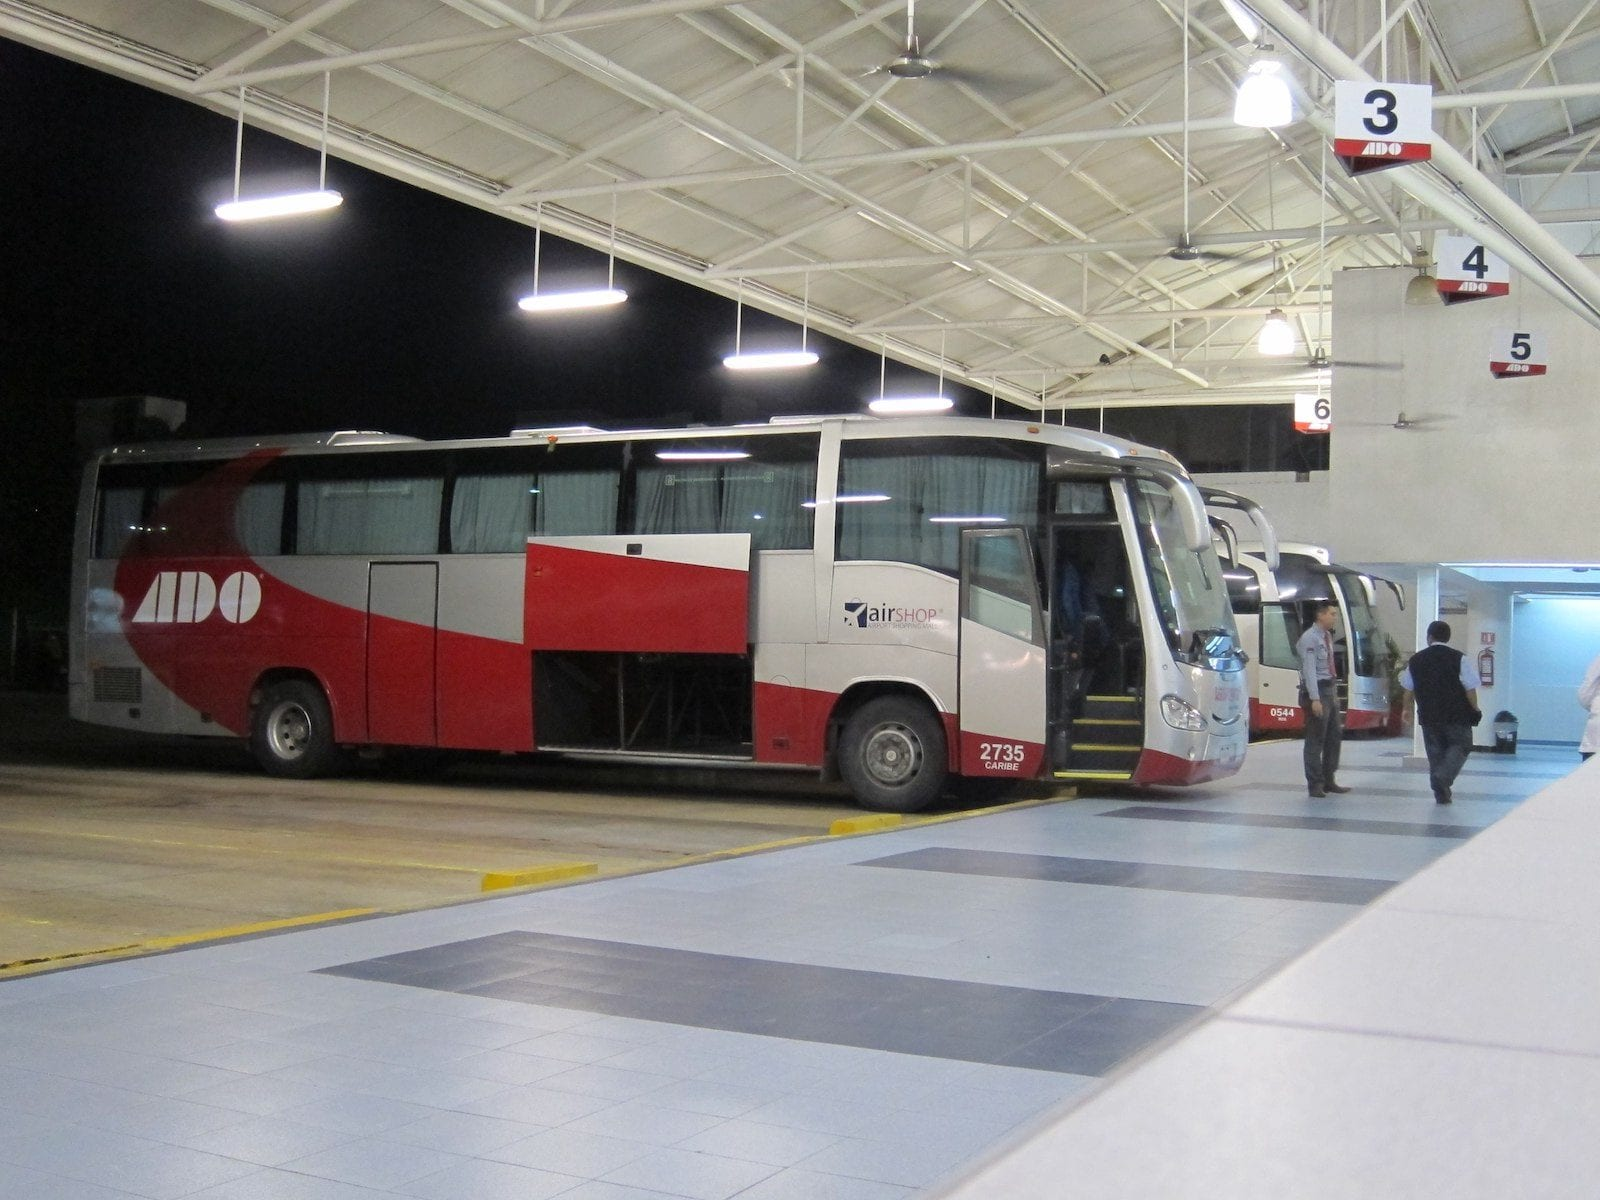 ADO run scheduled services, Mexico